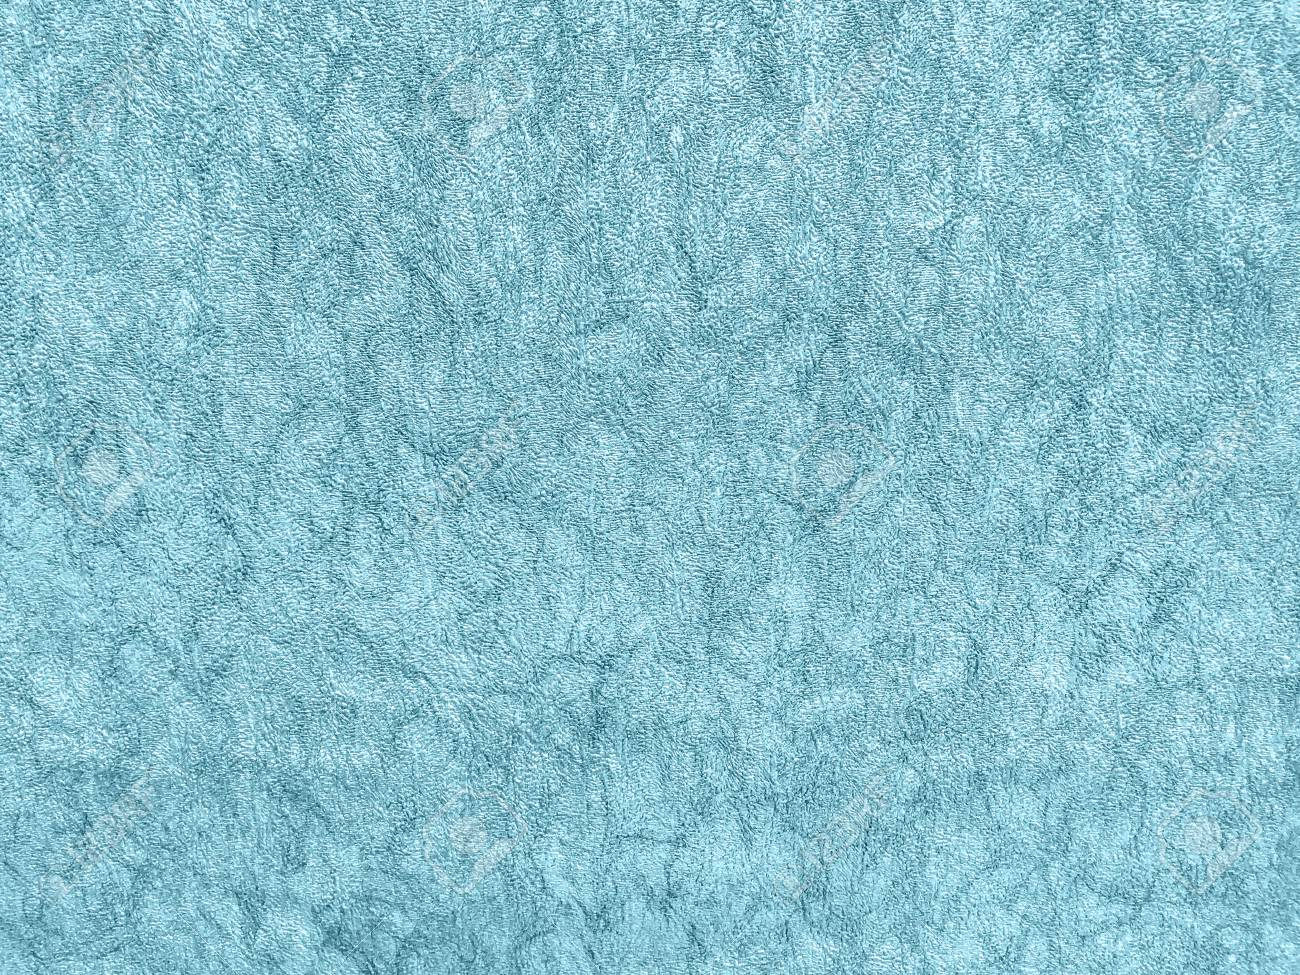 Texture Of Light Blue Wallpaper With A Pattern Sky Paper Surface